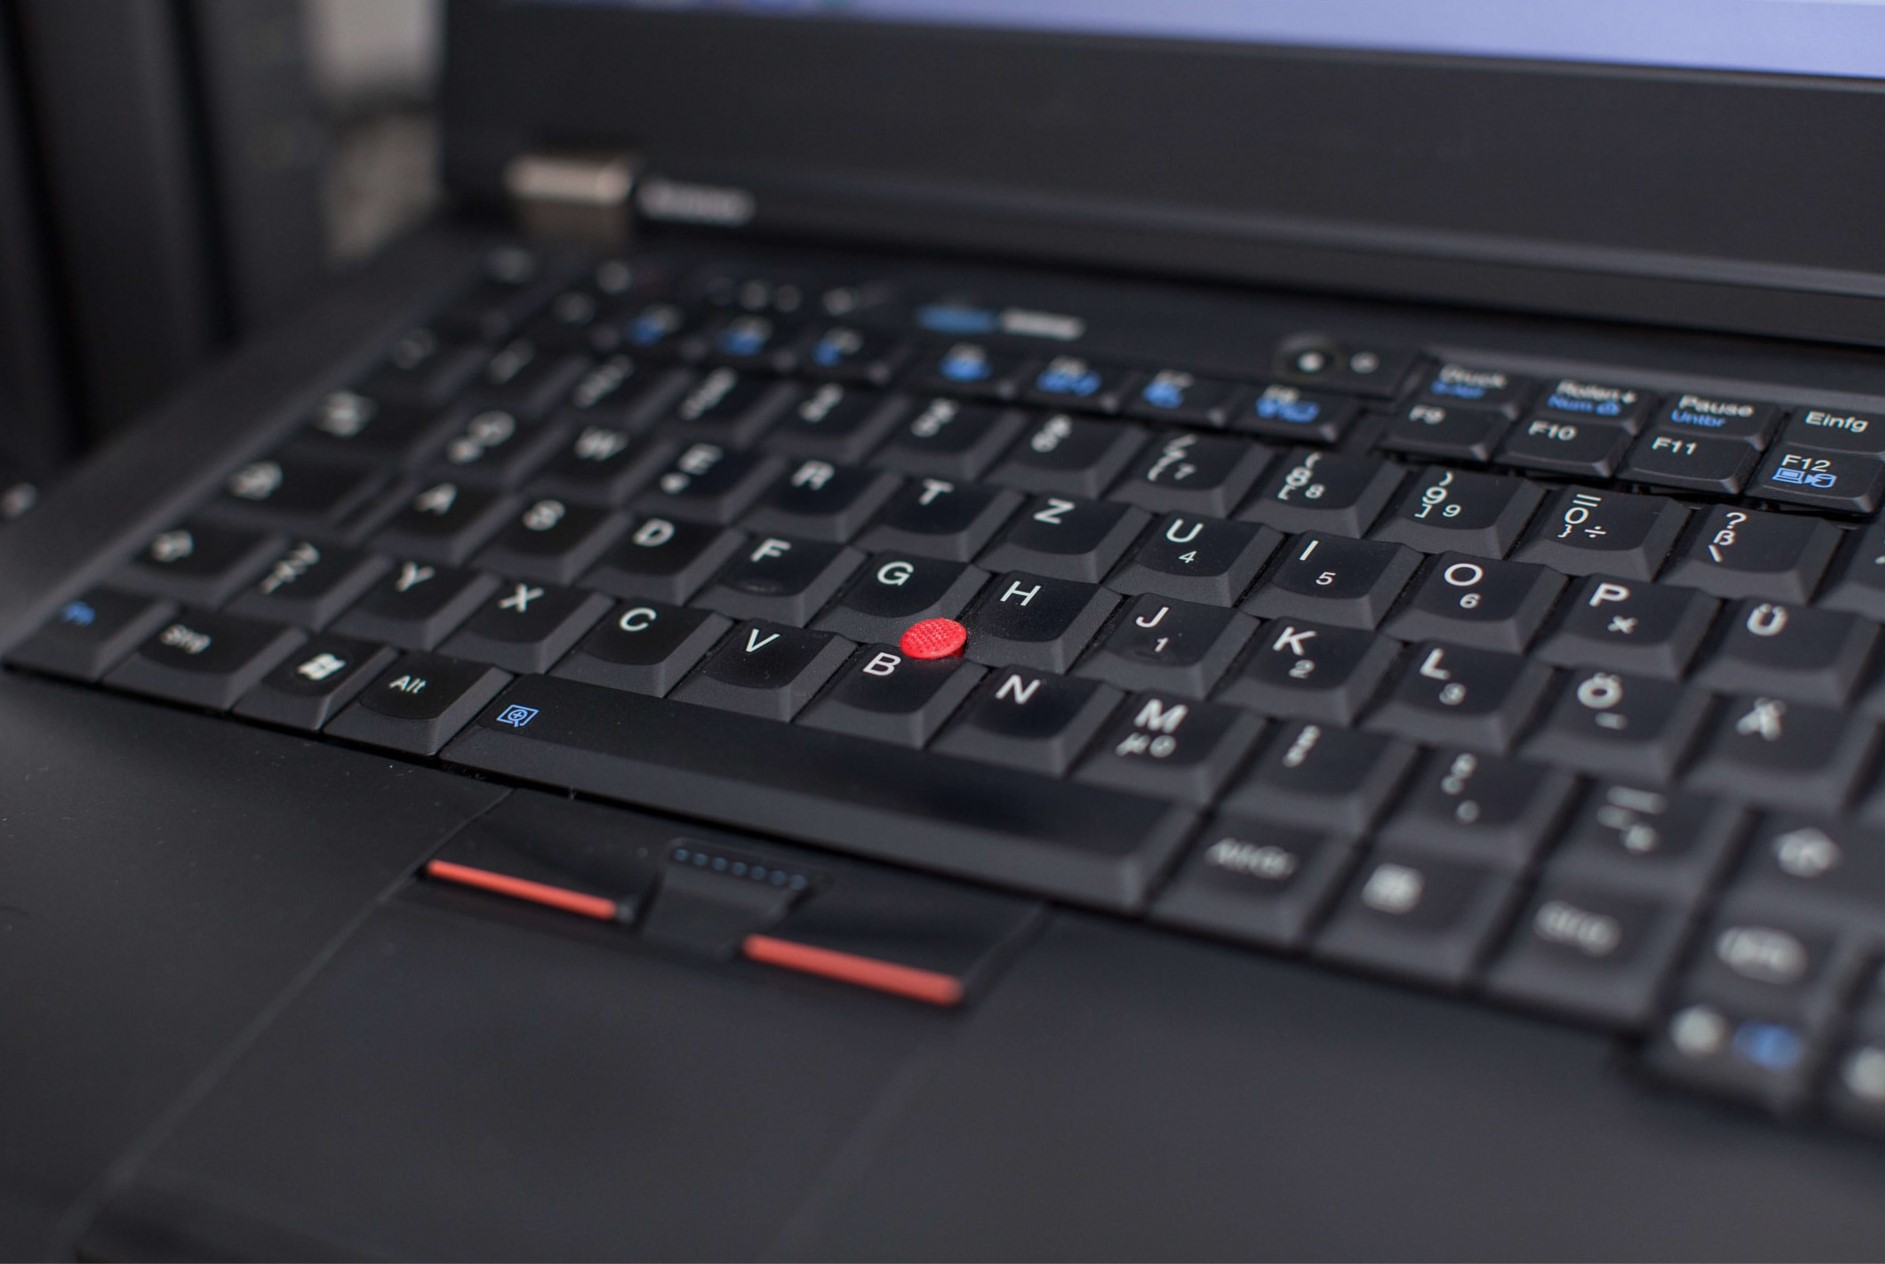 Thinkpad laptop keyboard